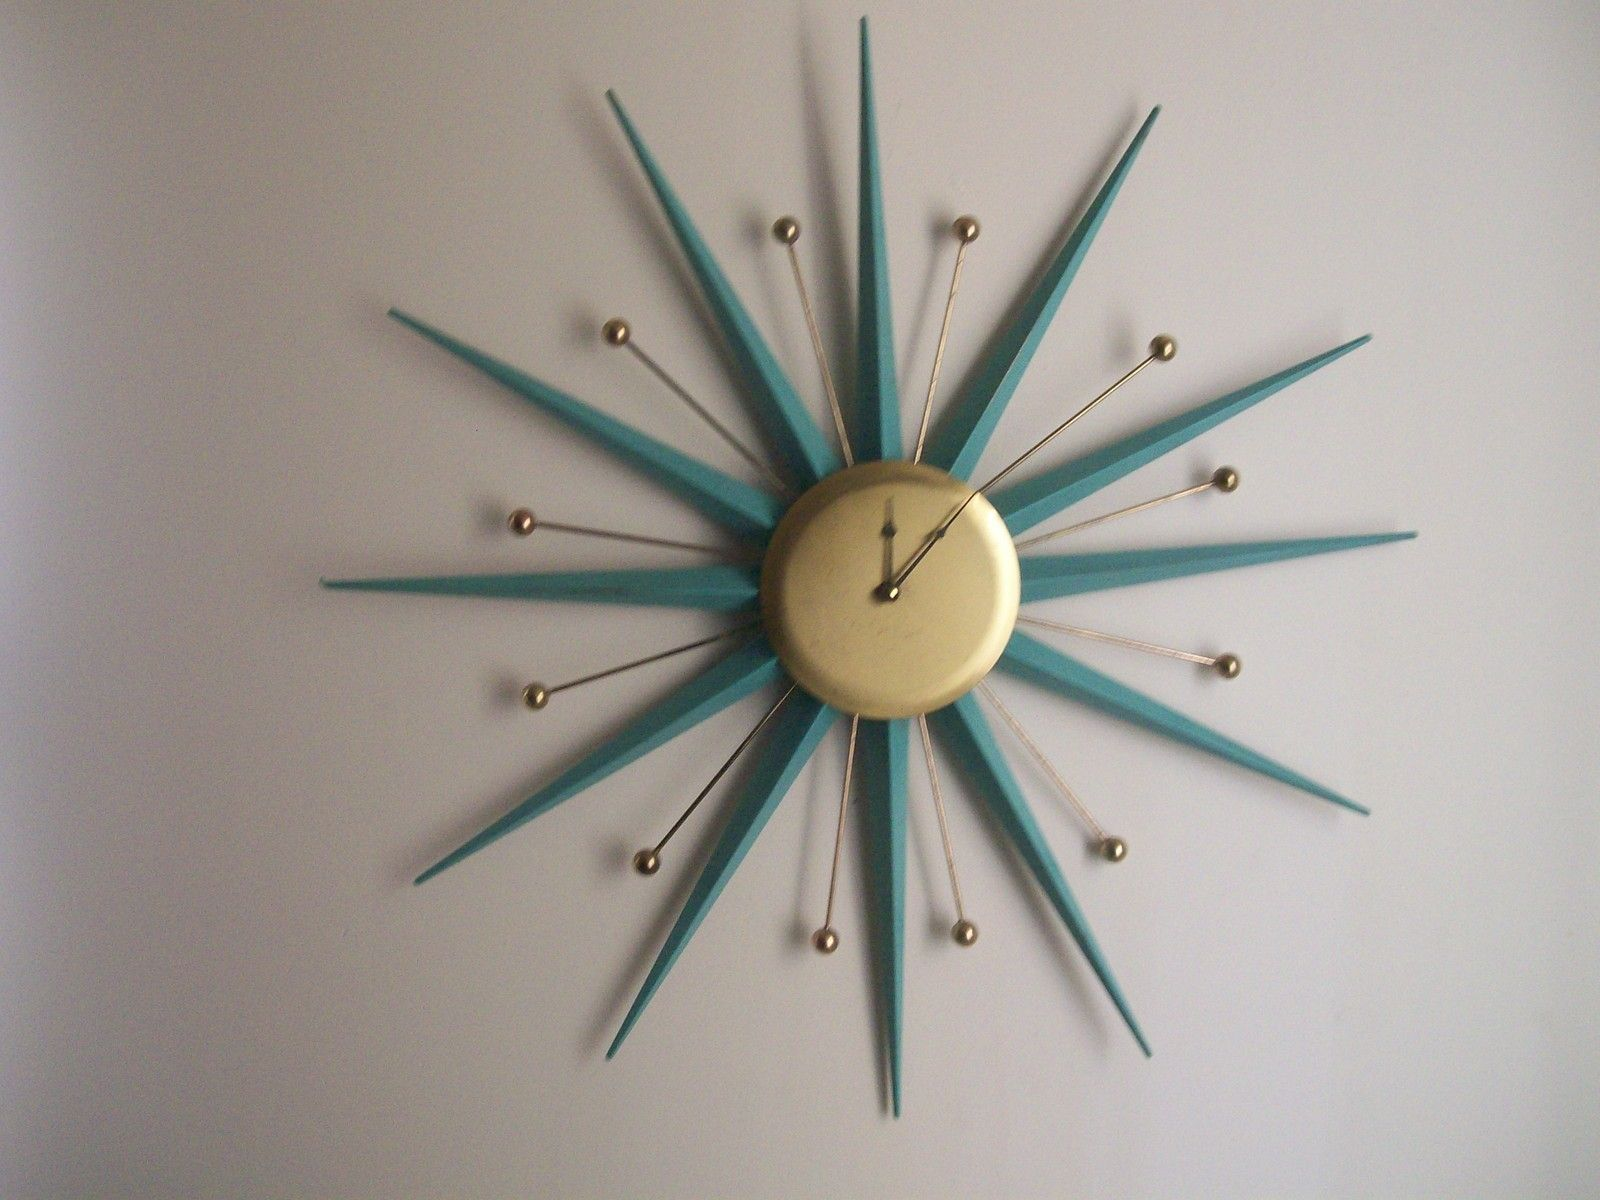 1960s Sunburst Atomic Eames Era 30 Wall Clock Wall clocks